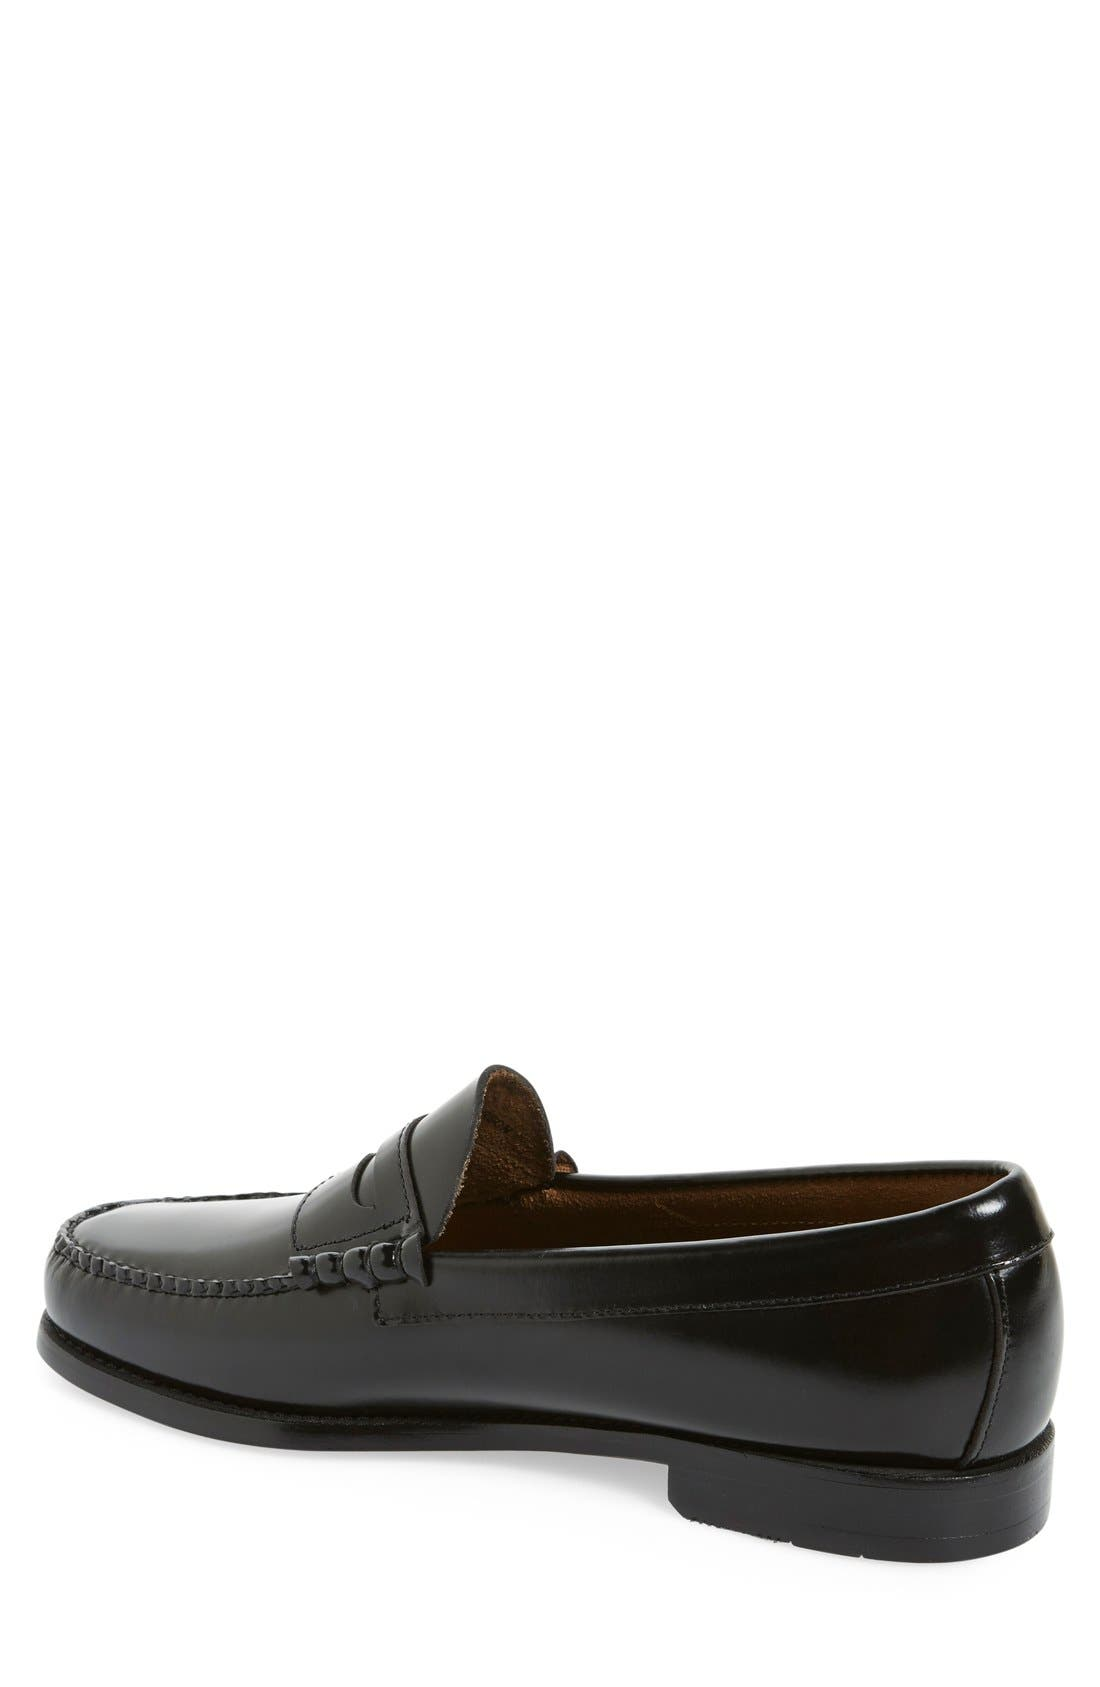 'Larson - Weejuns' Penny Loafer,                             Alternate thumbnail 3, color,                             BLACK LEATHER